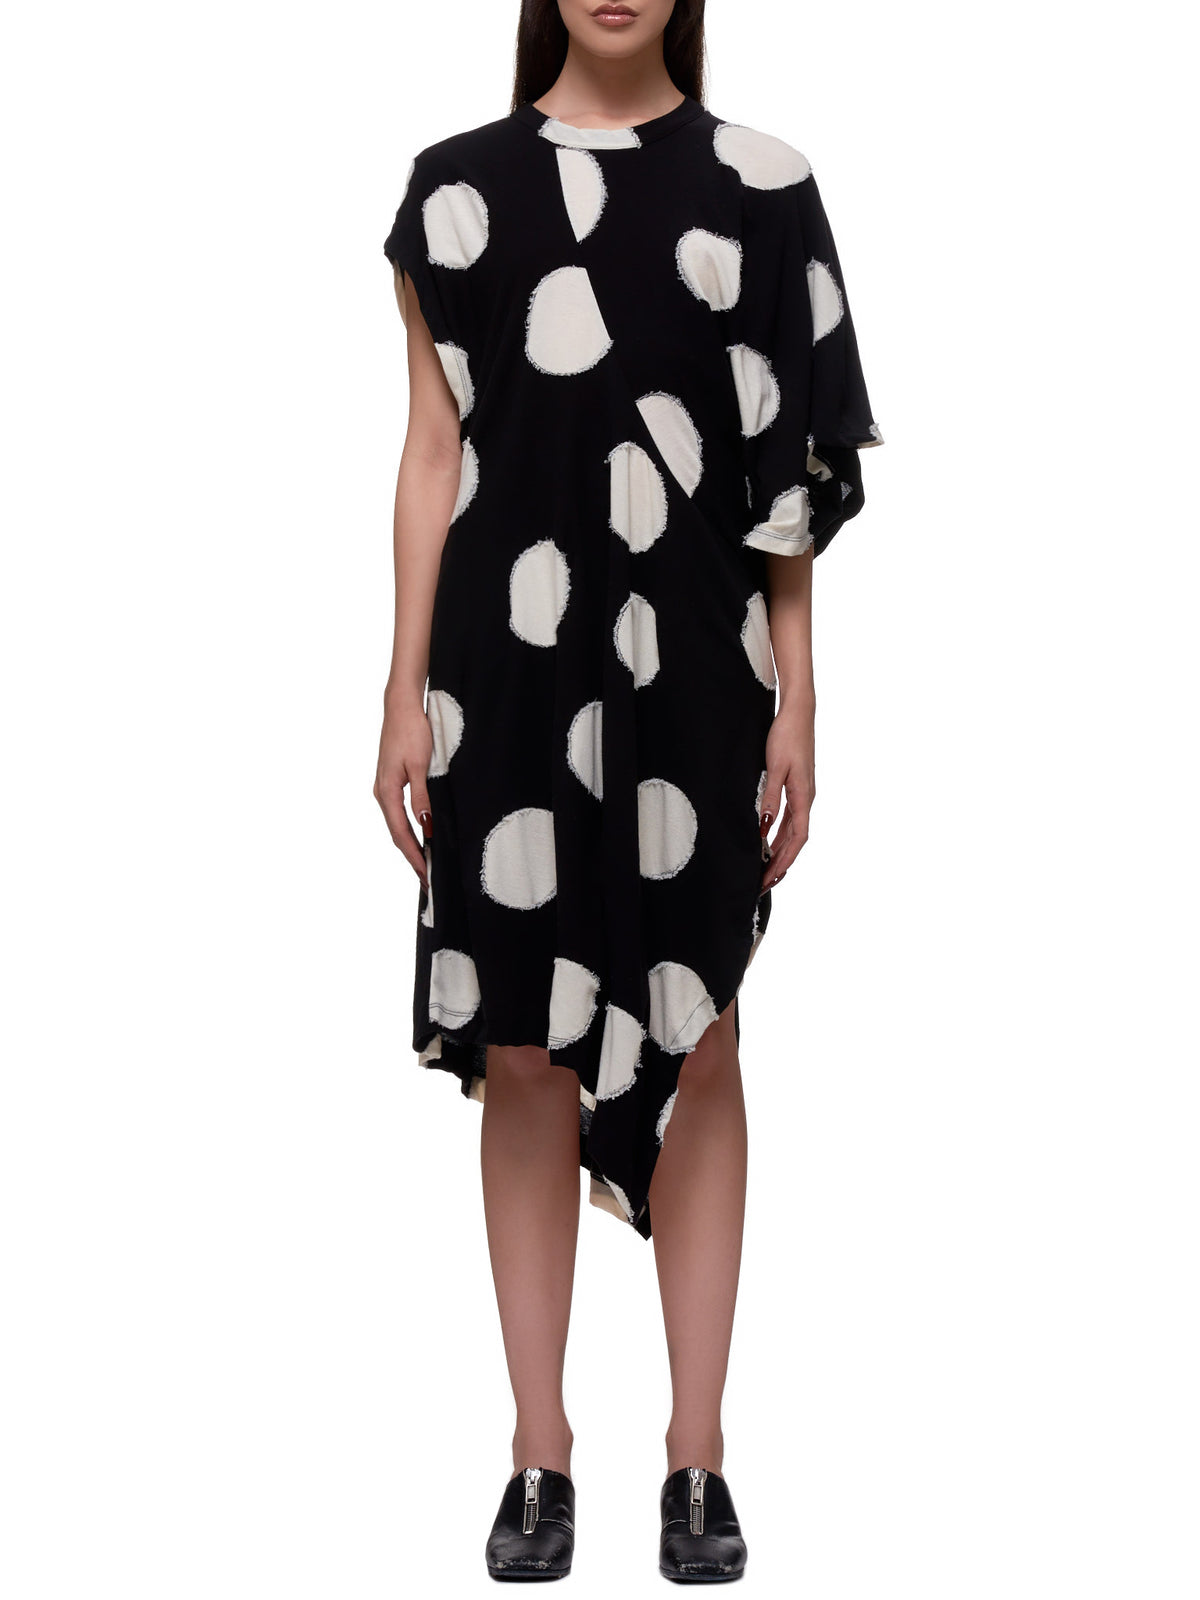 Raw Polka Dot T-Shirt Dress (YN-T30-062-BLACK)